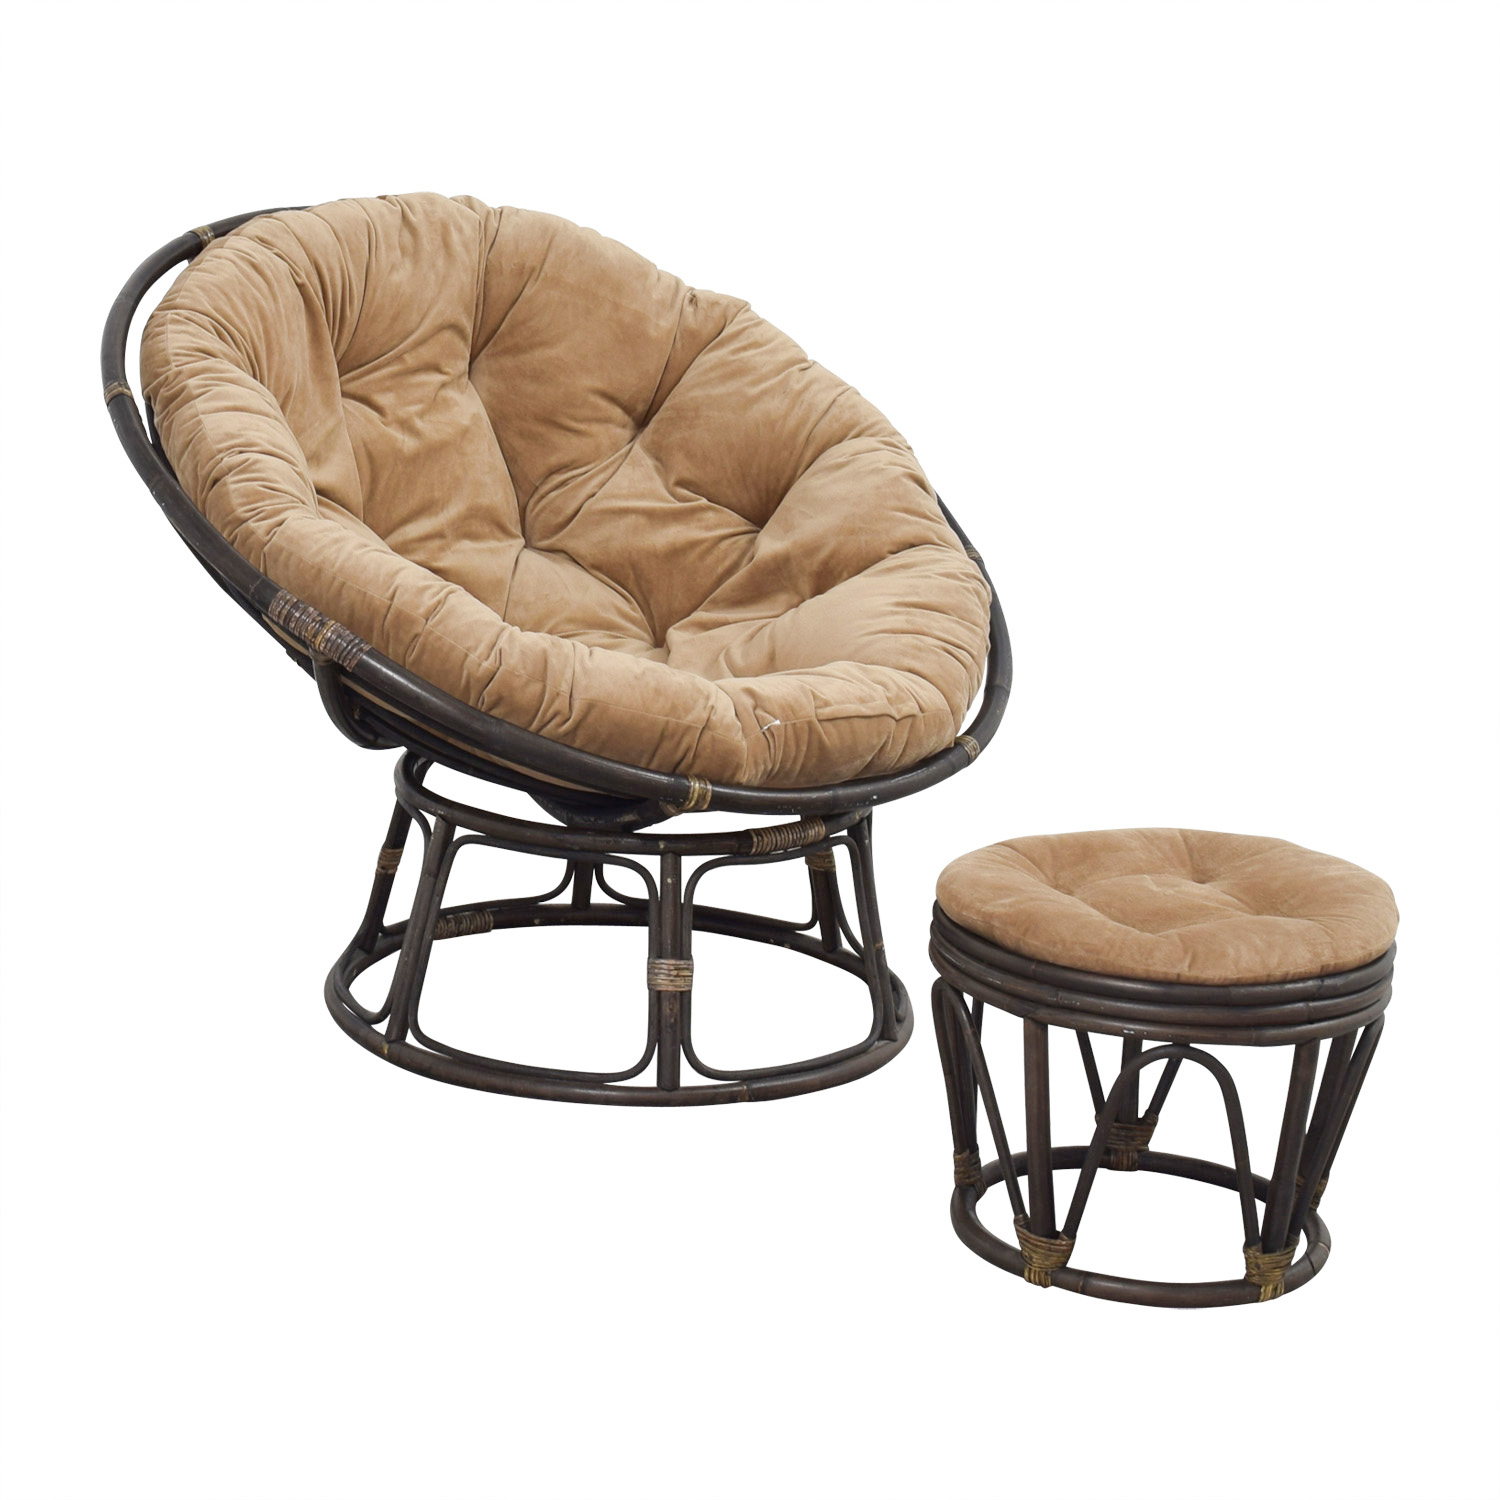 Pier 1 Imports Papasan Brown Lounge Chair And Ottoman Nj